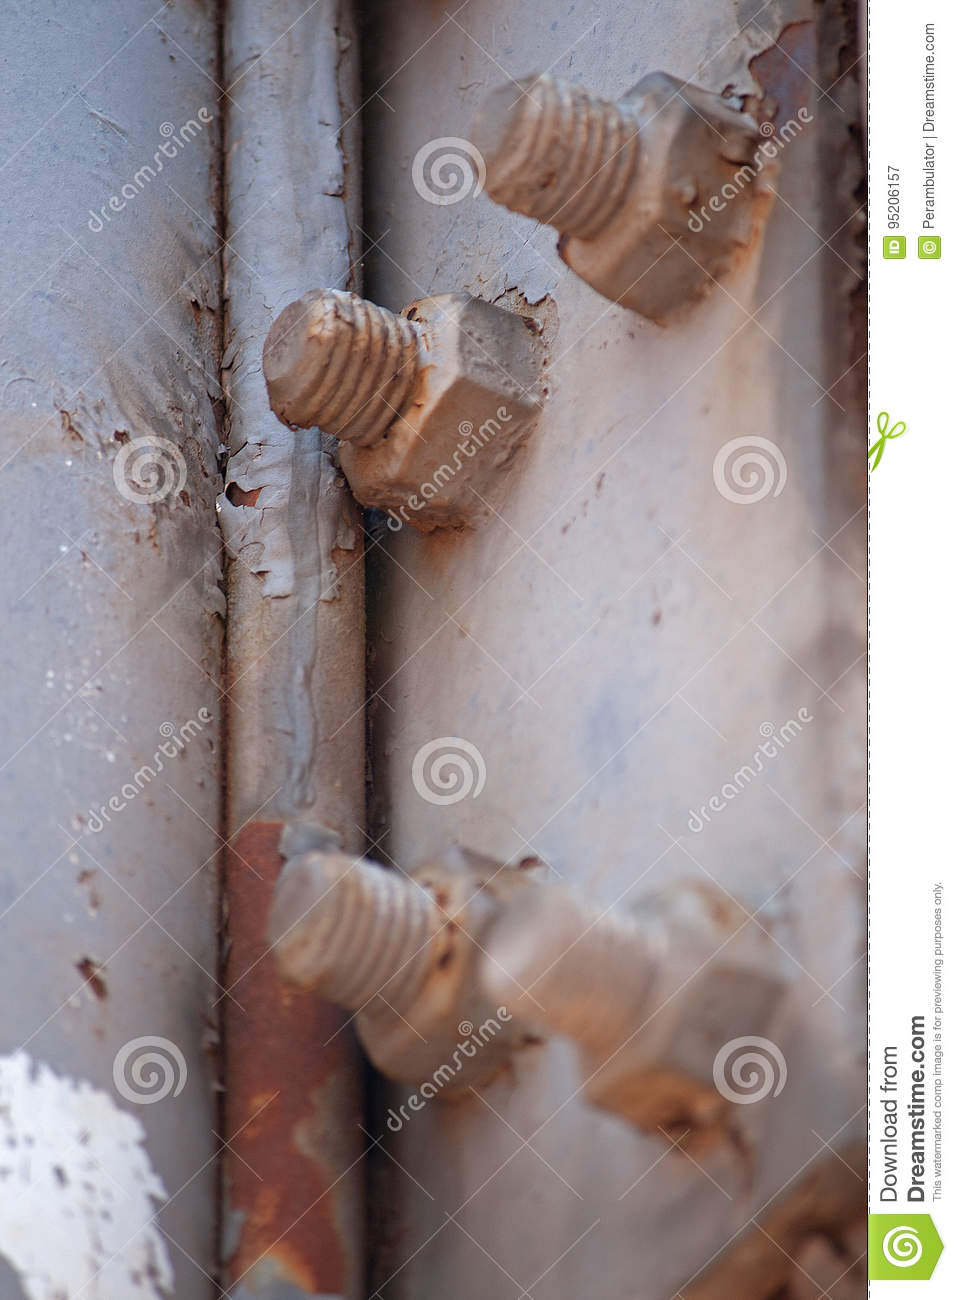 DECAYING BOLTS AND SCREWS